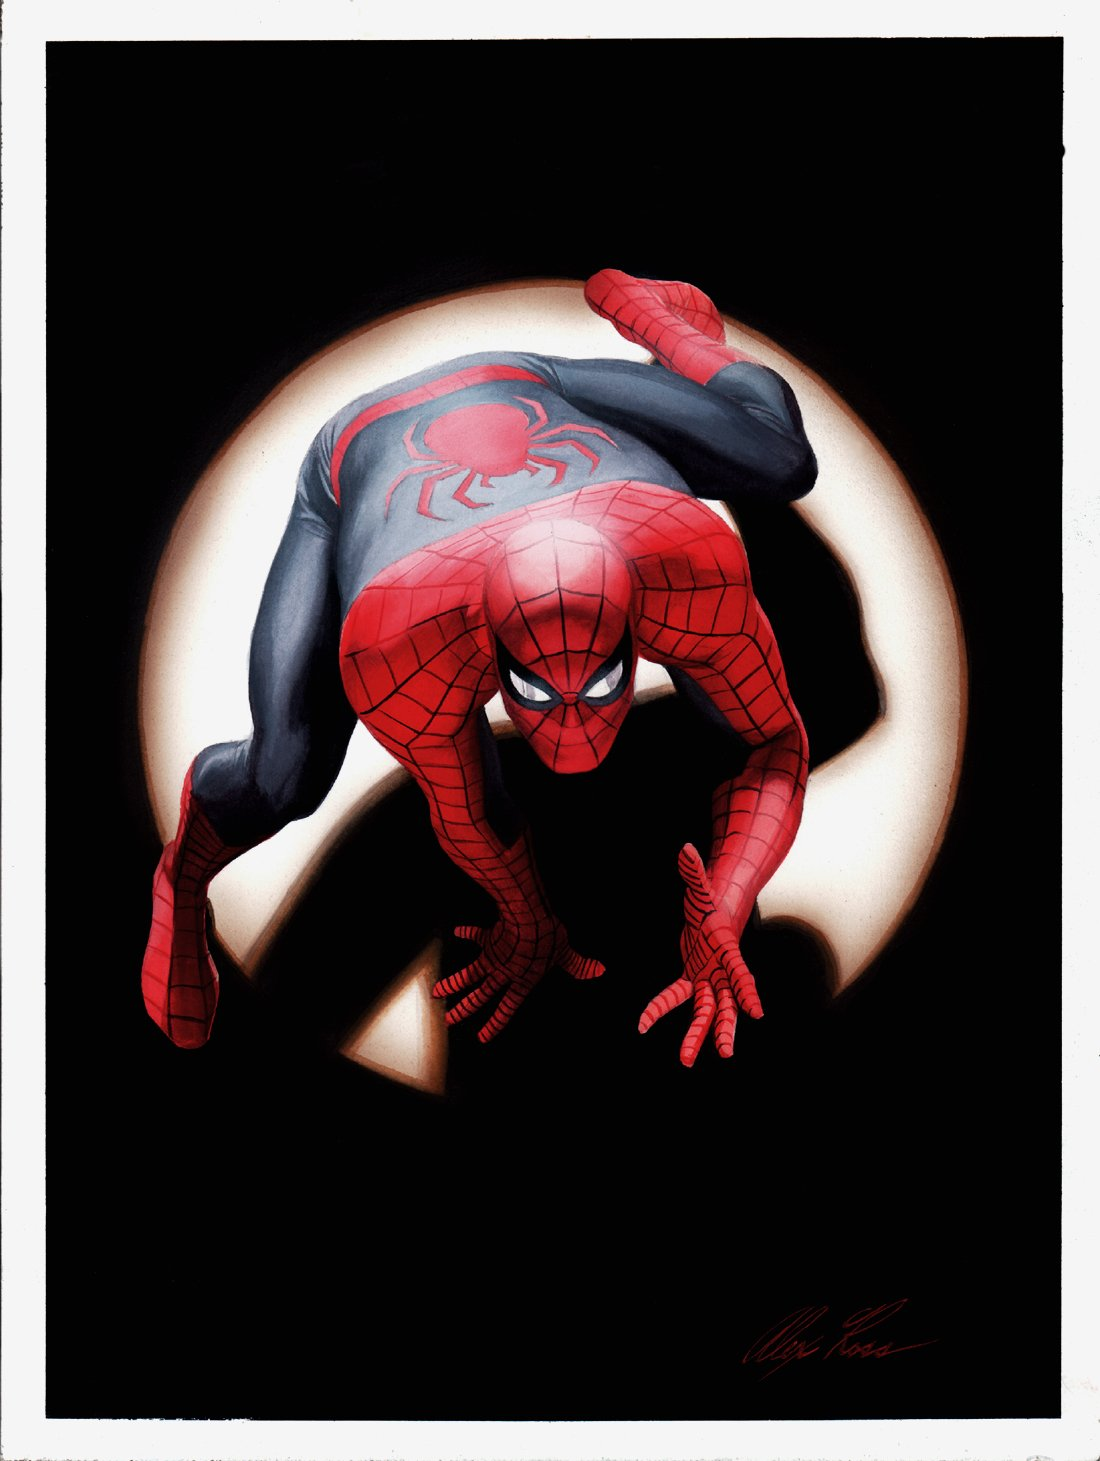 'MARVELS' 25th Anniversary Cover Painting & Spider-Man Poster Art (2018)